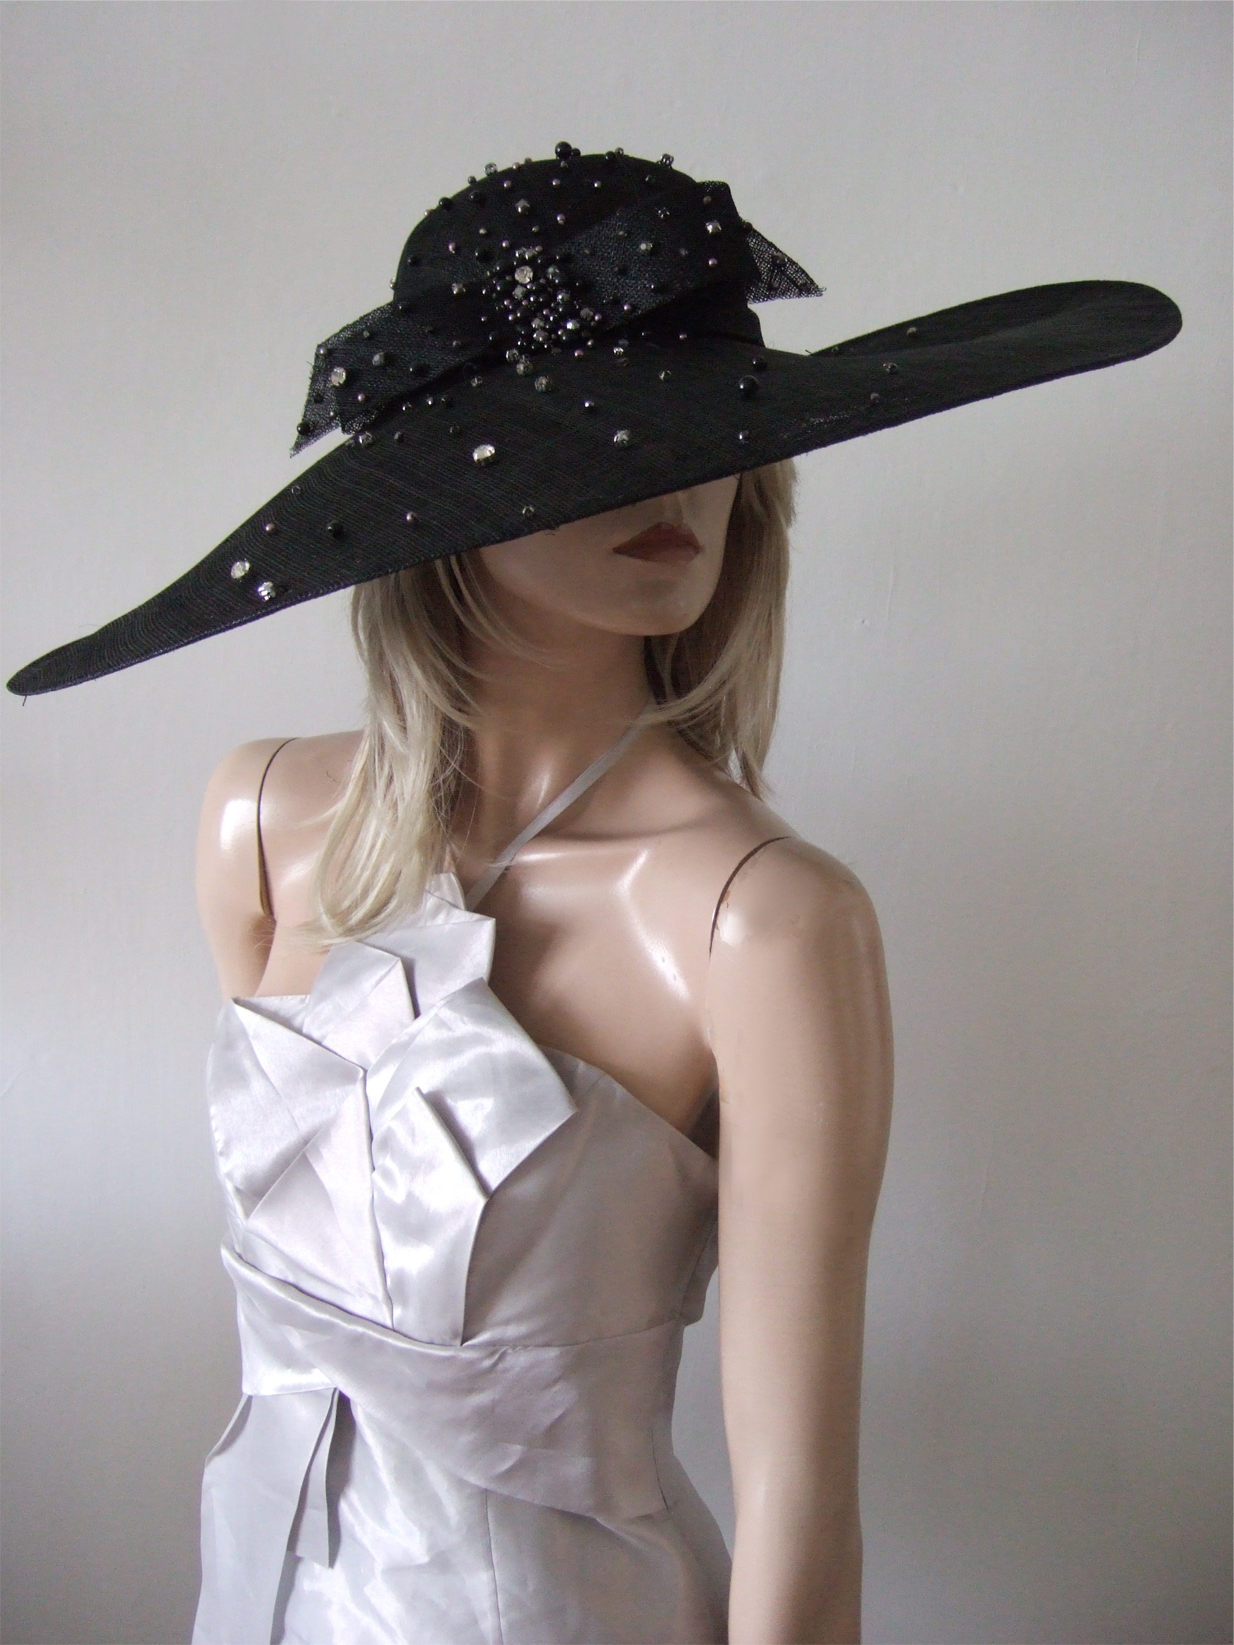 Big Hat for Royal Ascot 2020. Royal Ascot Hat Rental 2020. Hat Hire Berkshire. Amazing Royal Ascot Hats 2020. Ladies Wedding Hats for Hire 2020. Black Mother of the Bride Hats 2020. Royal Ascot Hat Rental 2020. Formal Wedding Hats for Hire UK 2020. Hats for the Races 2020.